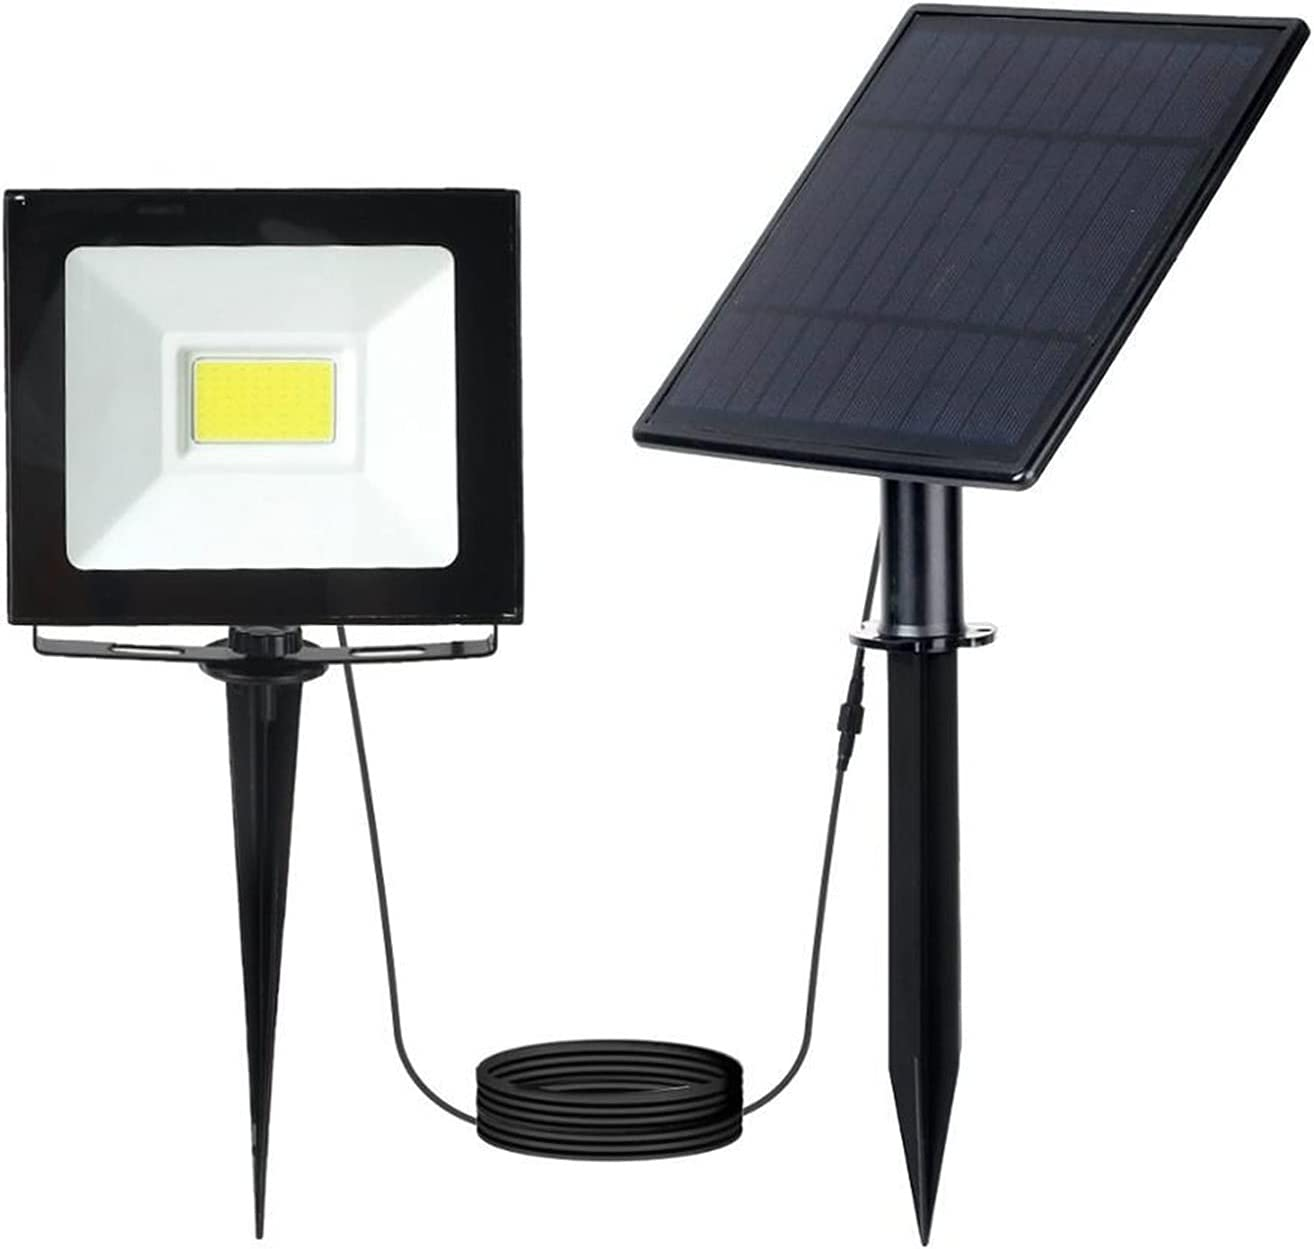 yangmeng COB Solar Wall lowest price Light Outdoor Lig Night Waterproof Limited time sale Path